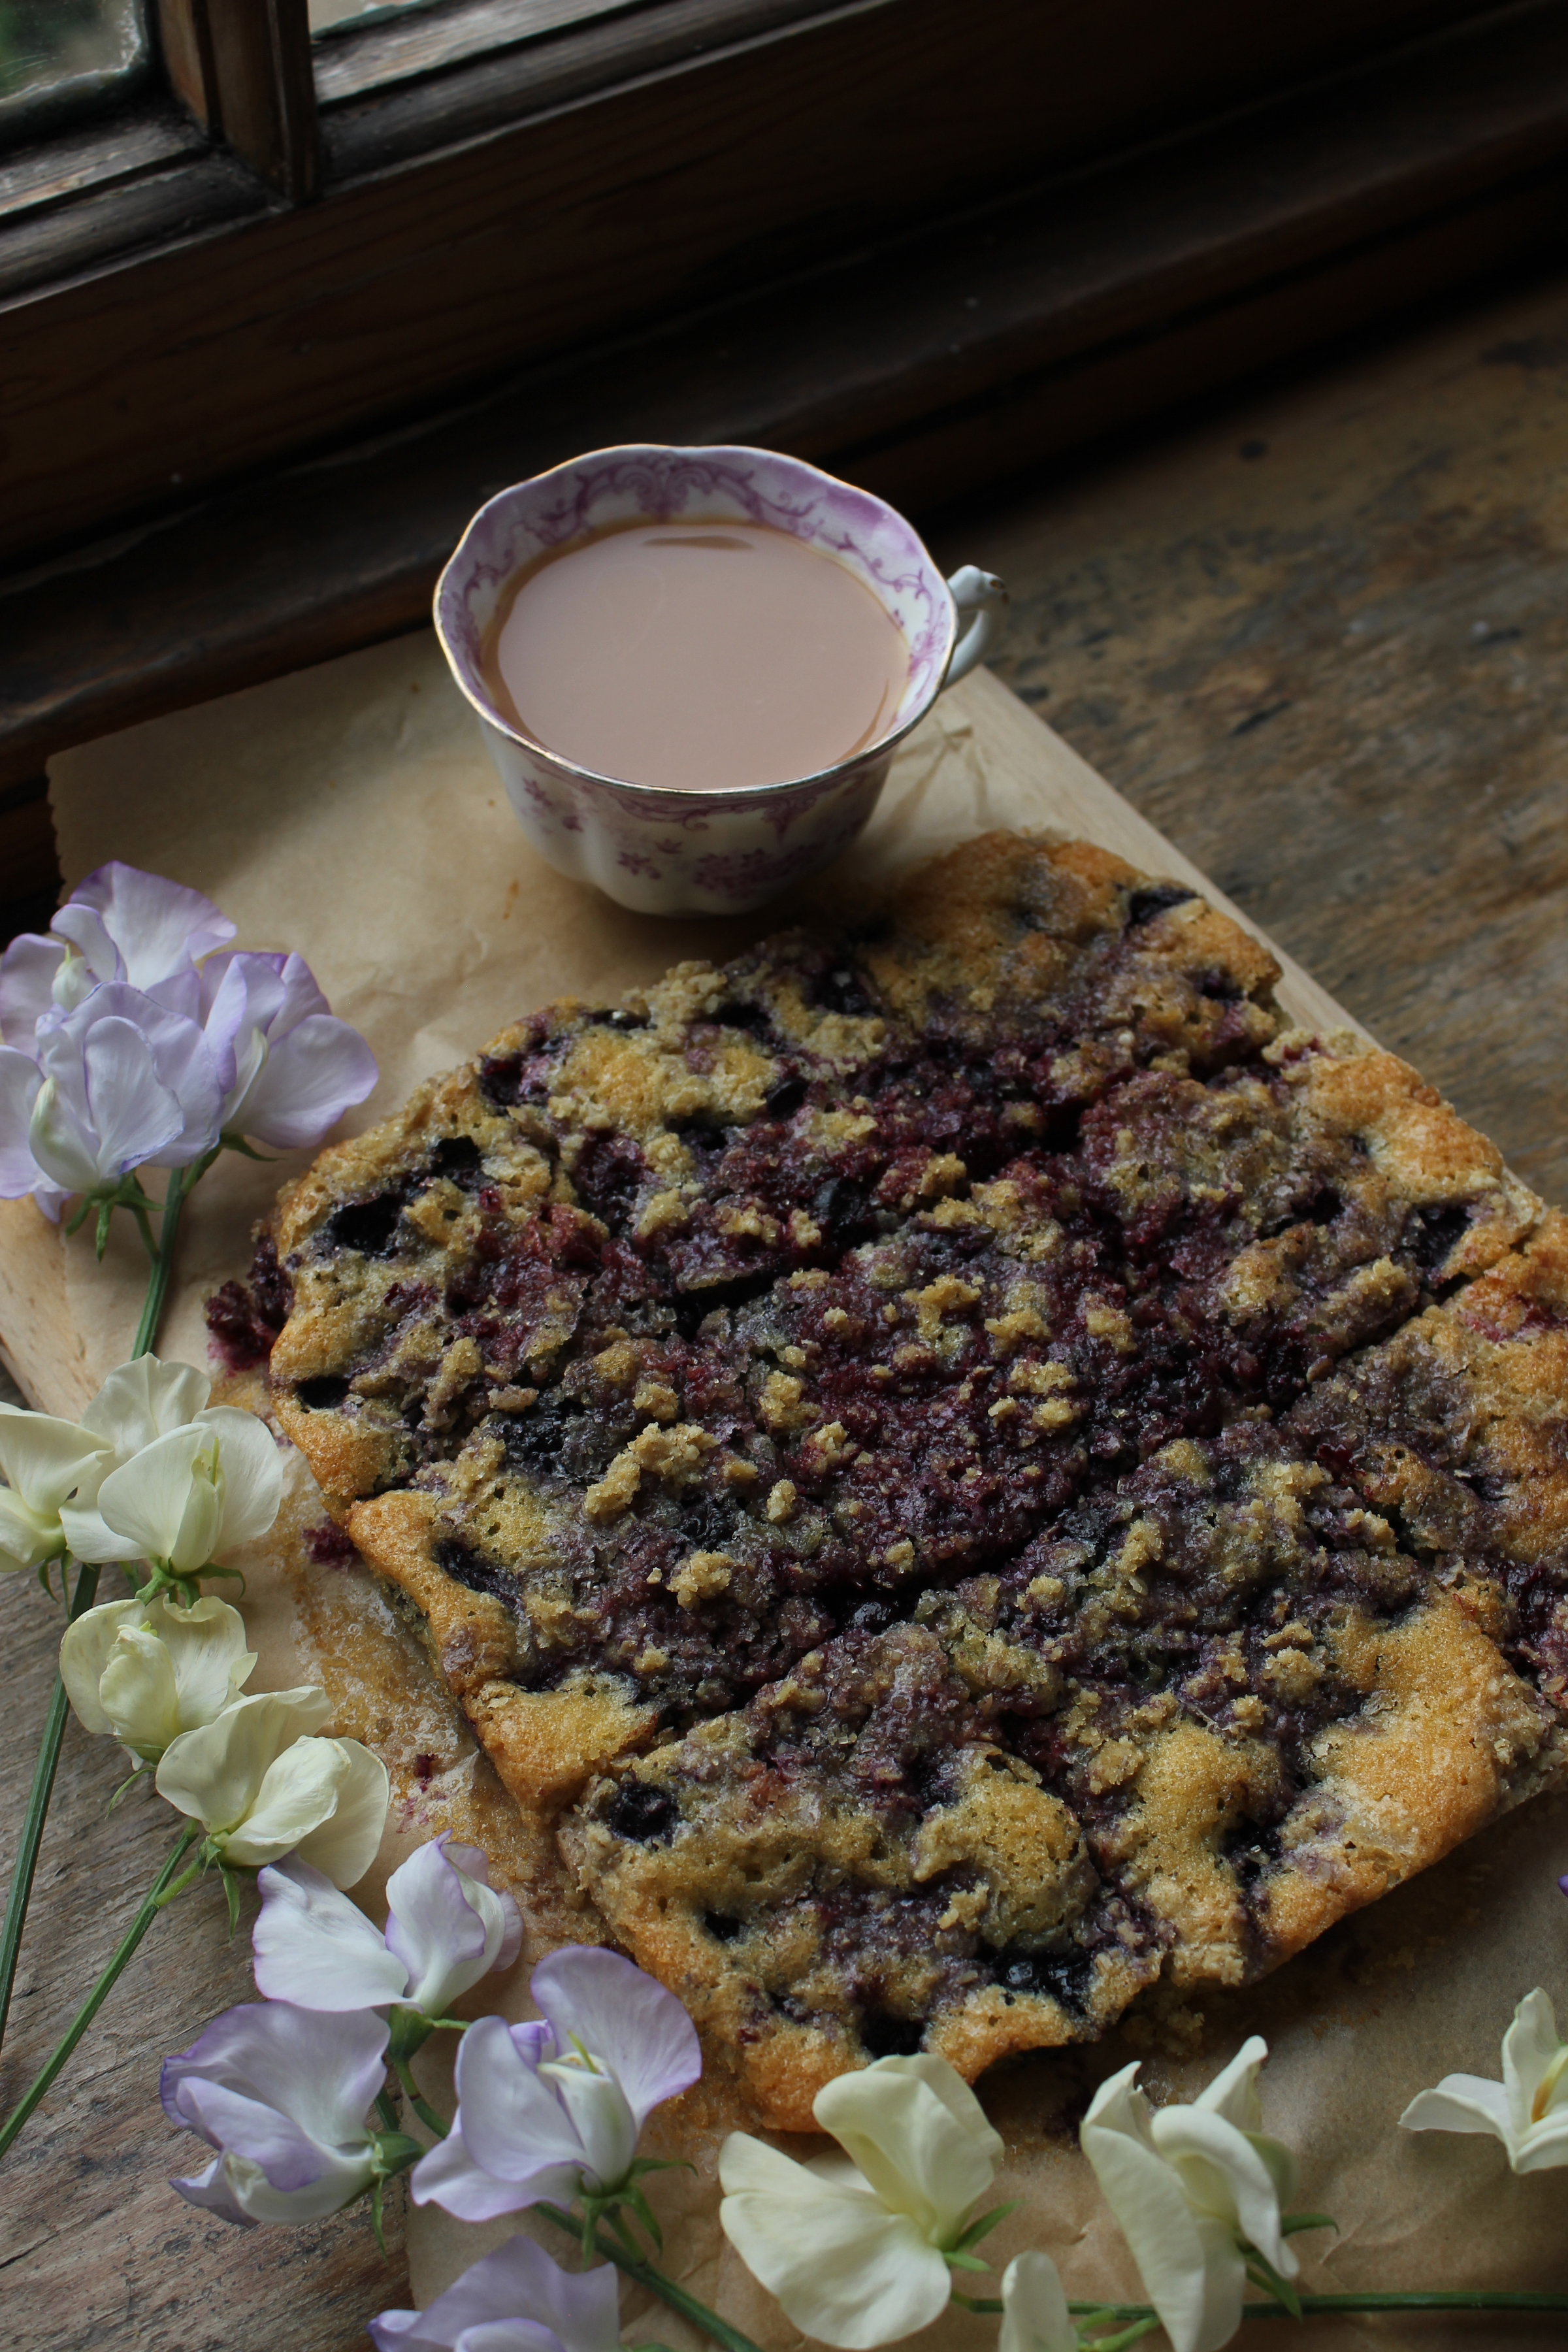 Blackcurrant crumb slices